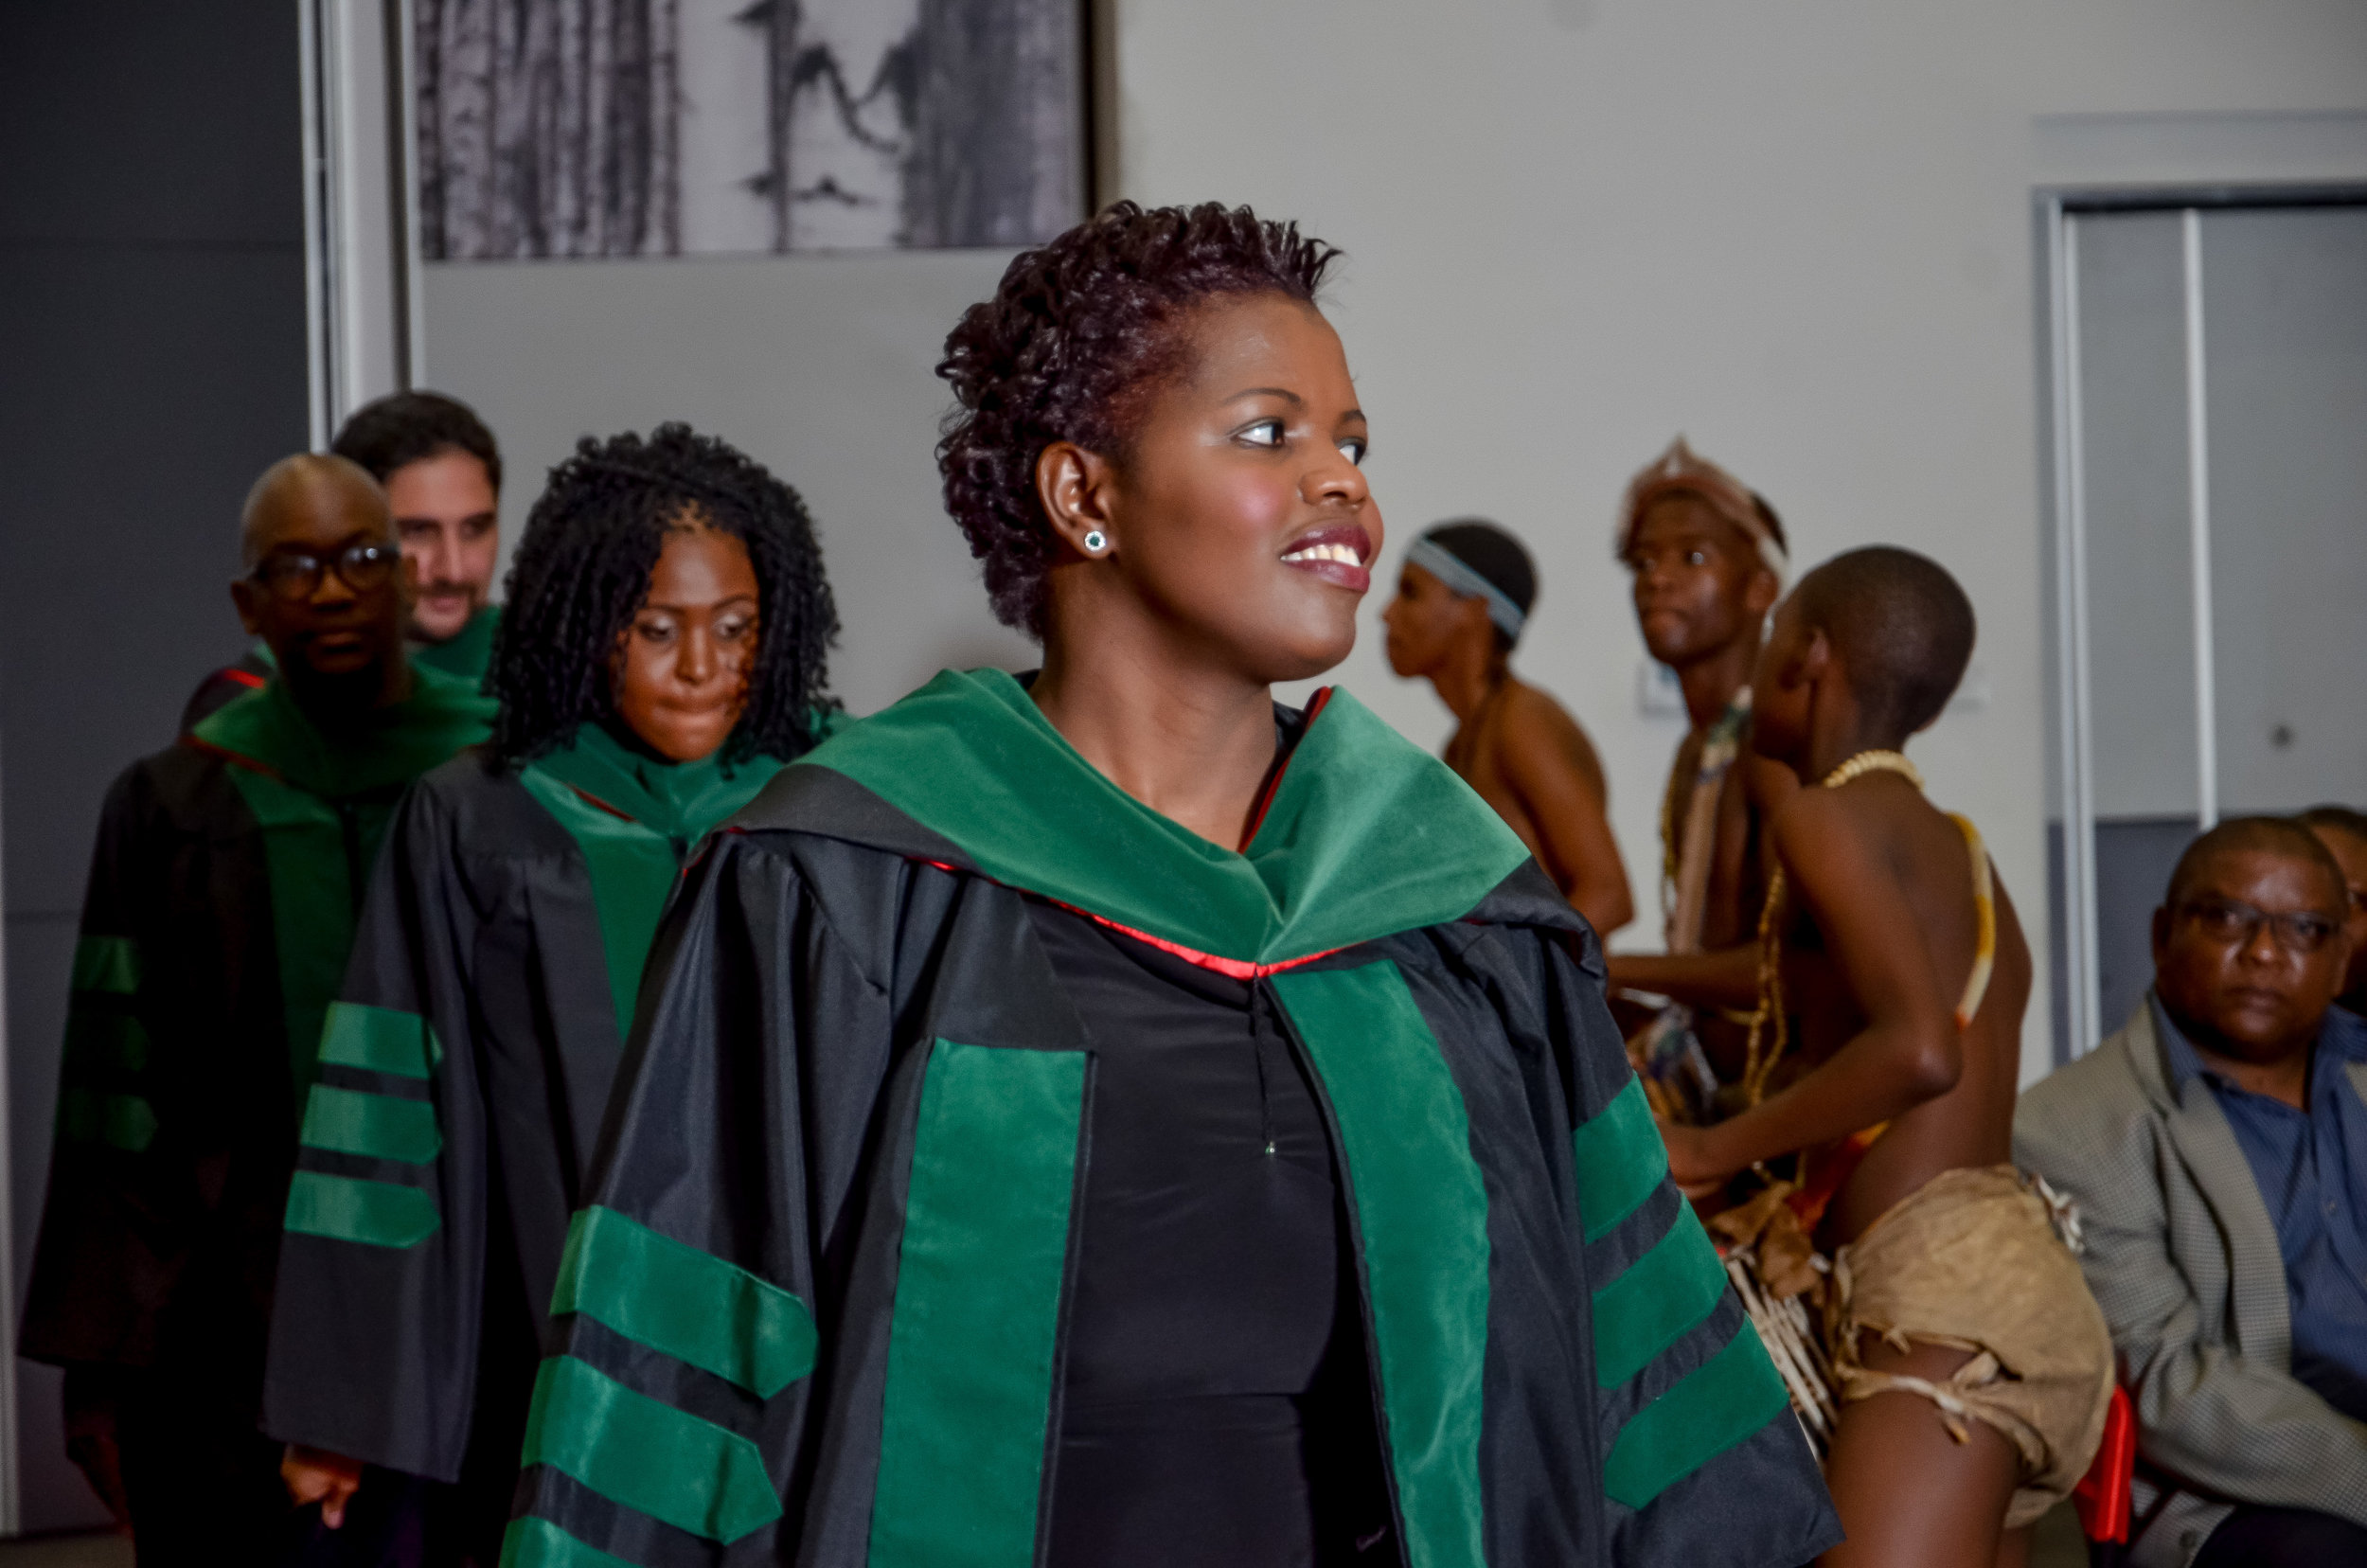 A Batswna medical graduate from St George's University at her commencement ceremony in Gaborone